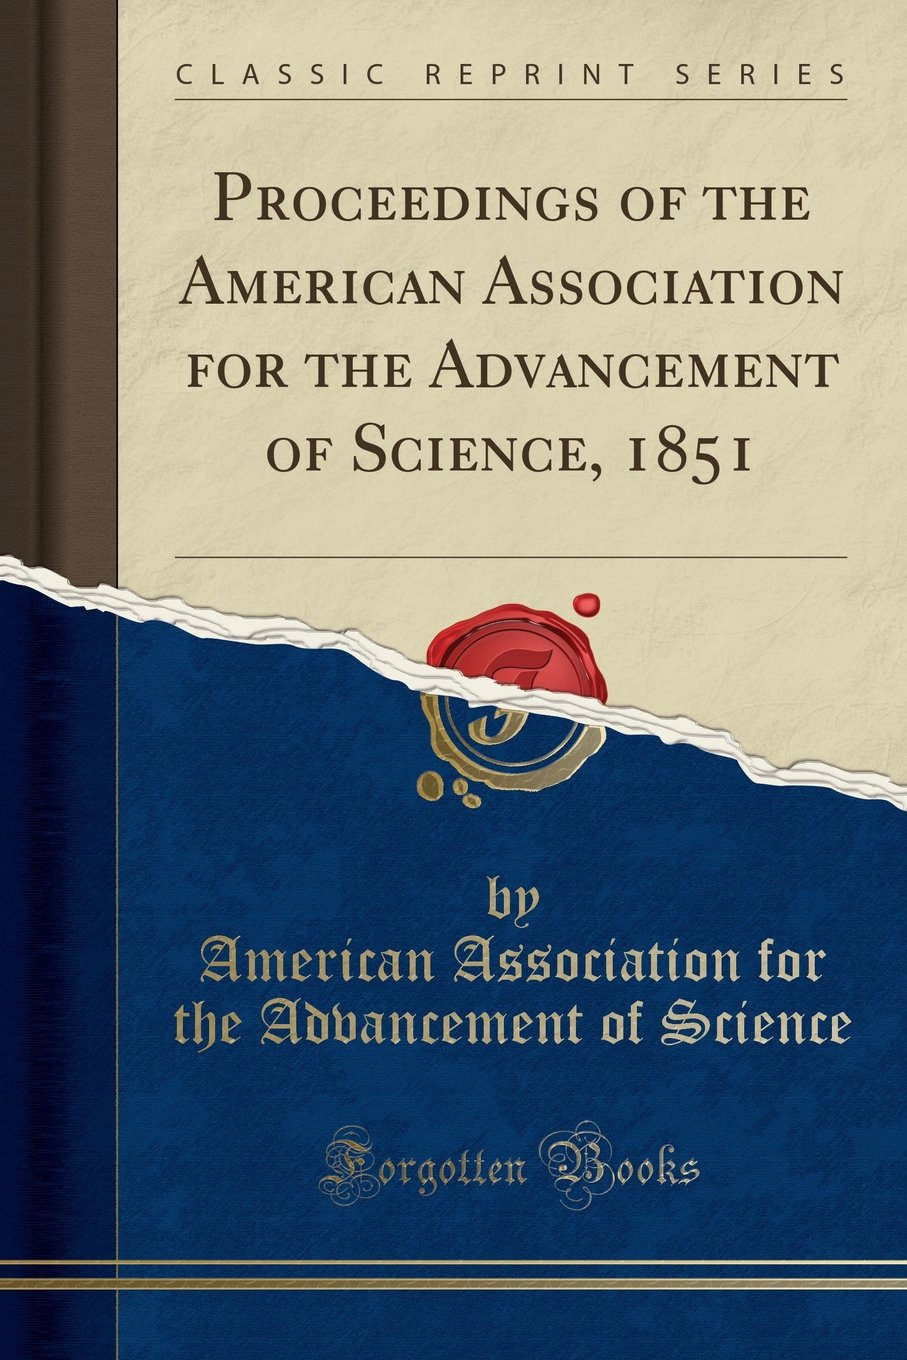 Read Online Proceedings of the American Association for the Advancement of Science, 1851 (Classic Reprint) ePub fb2 ebook